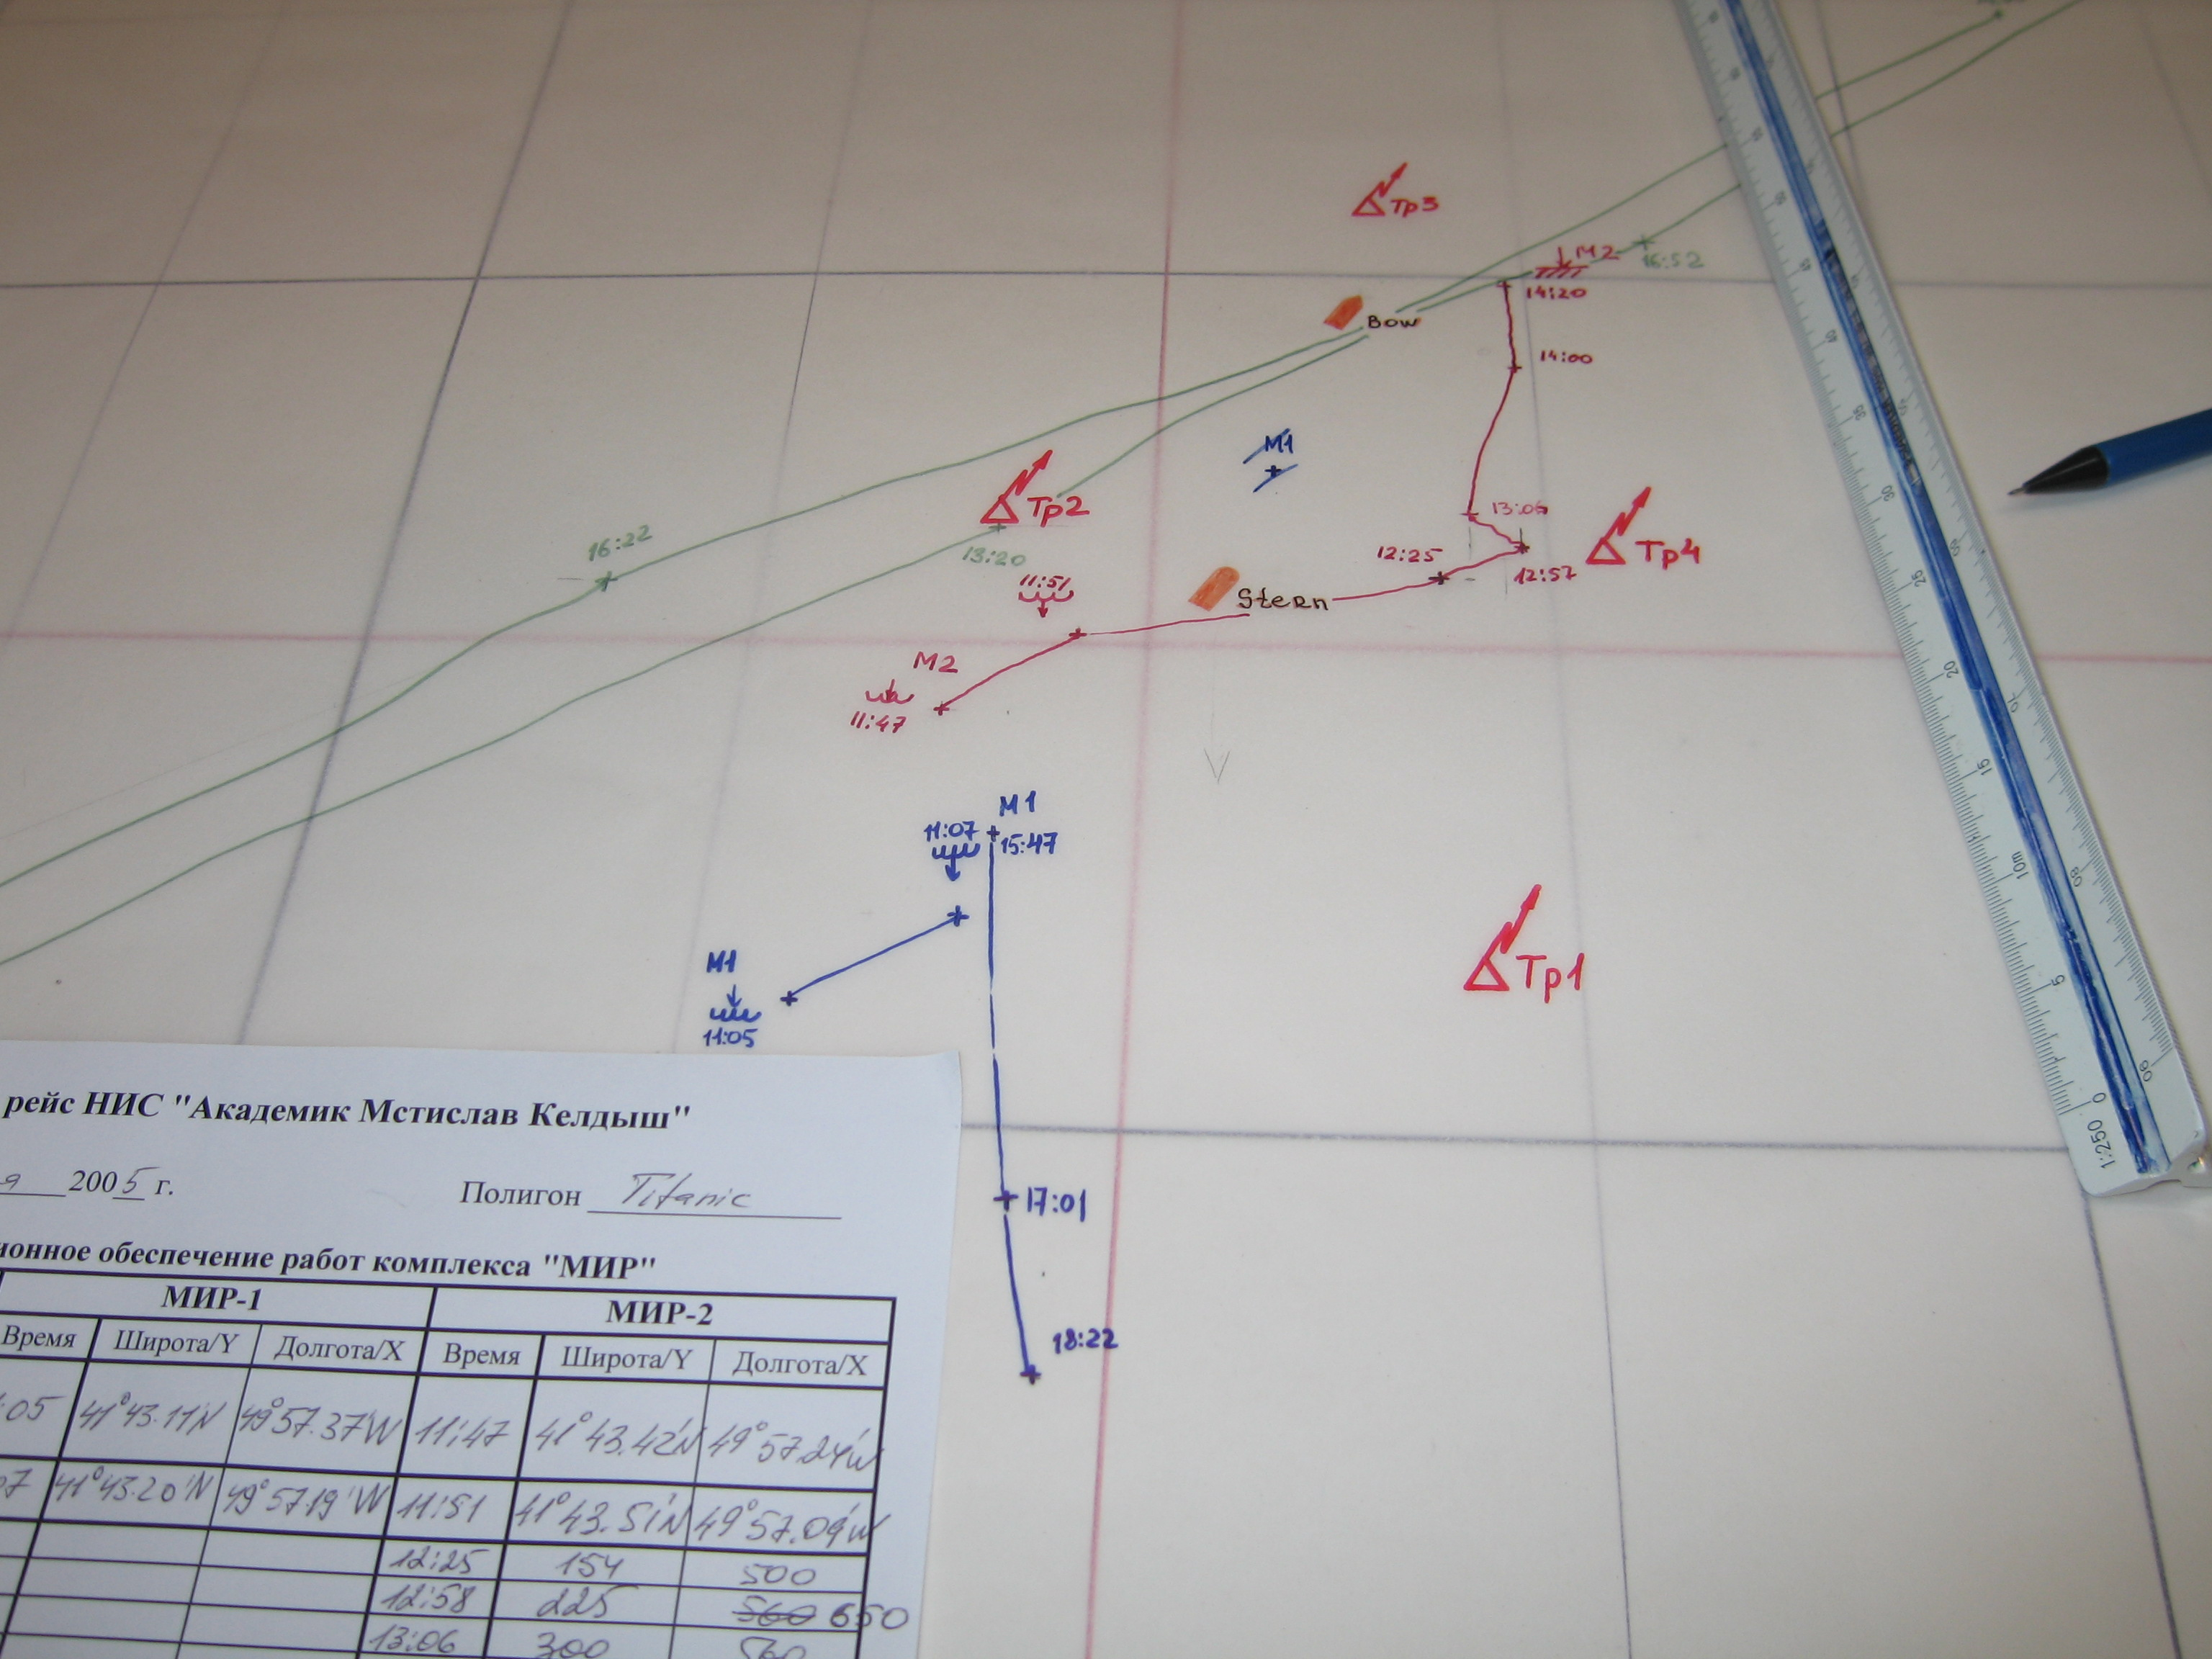 Titanic 009 day one dive one, our actual search areas and track, MIR 1 in blue and MIR 2 in red